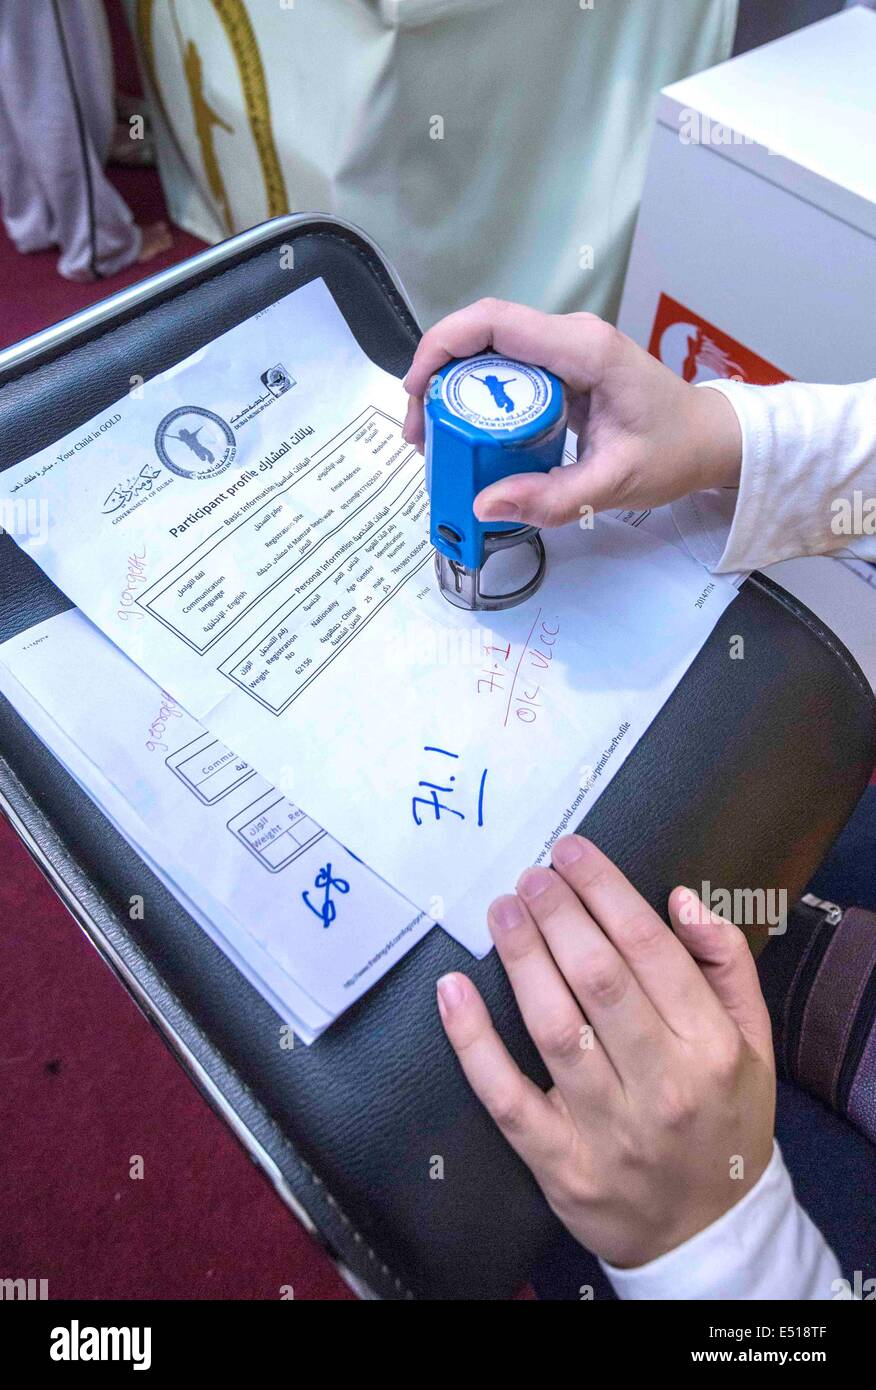 """Dubai, United Arab Emirates. 17th July, 2014. A staff member stamps on an application for a """"lose weight - win gold"""" Stock Photo"""